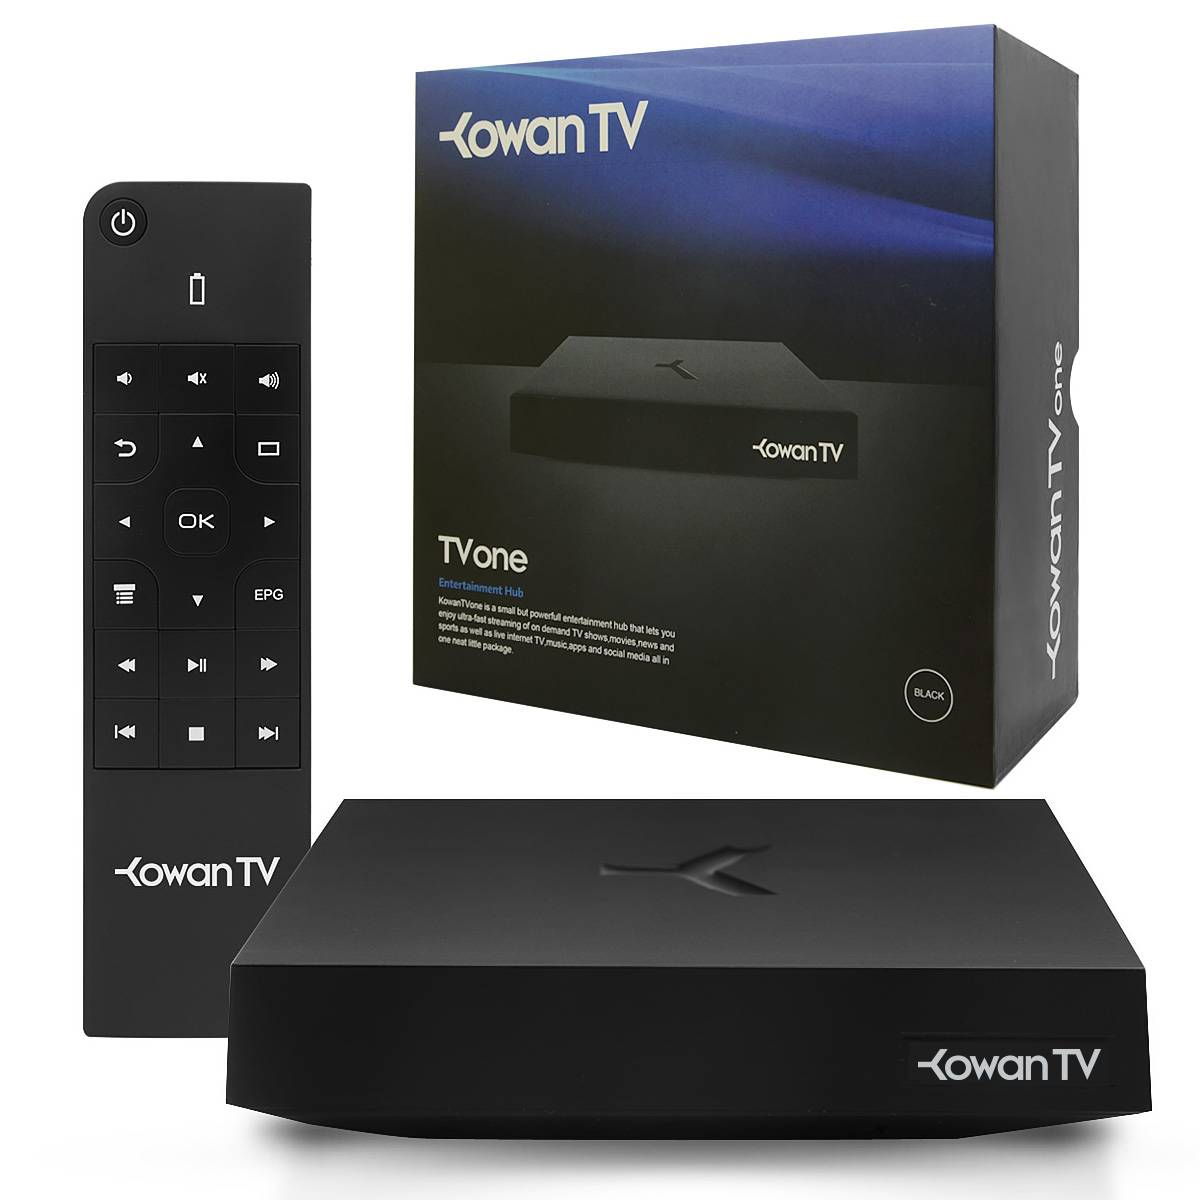 1000's of free live internet TV channels latest design TV box